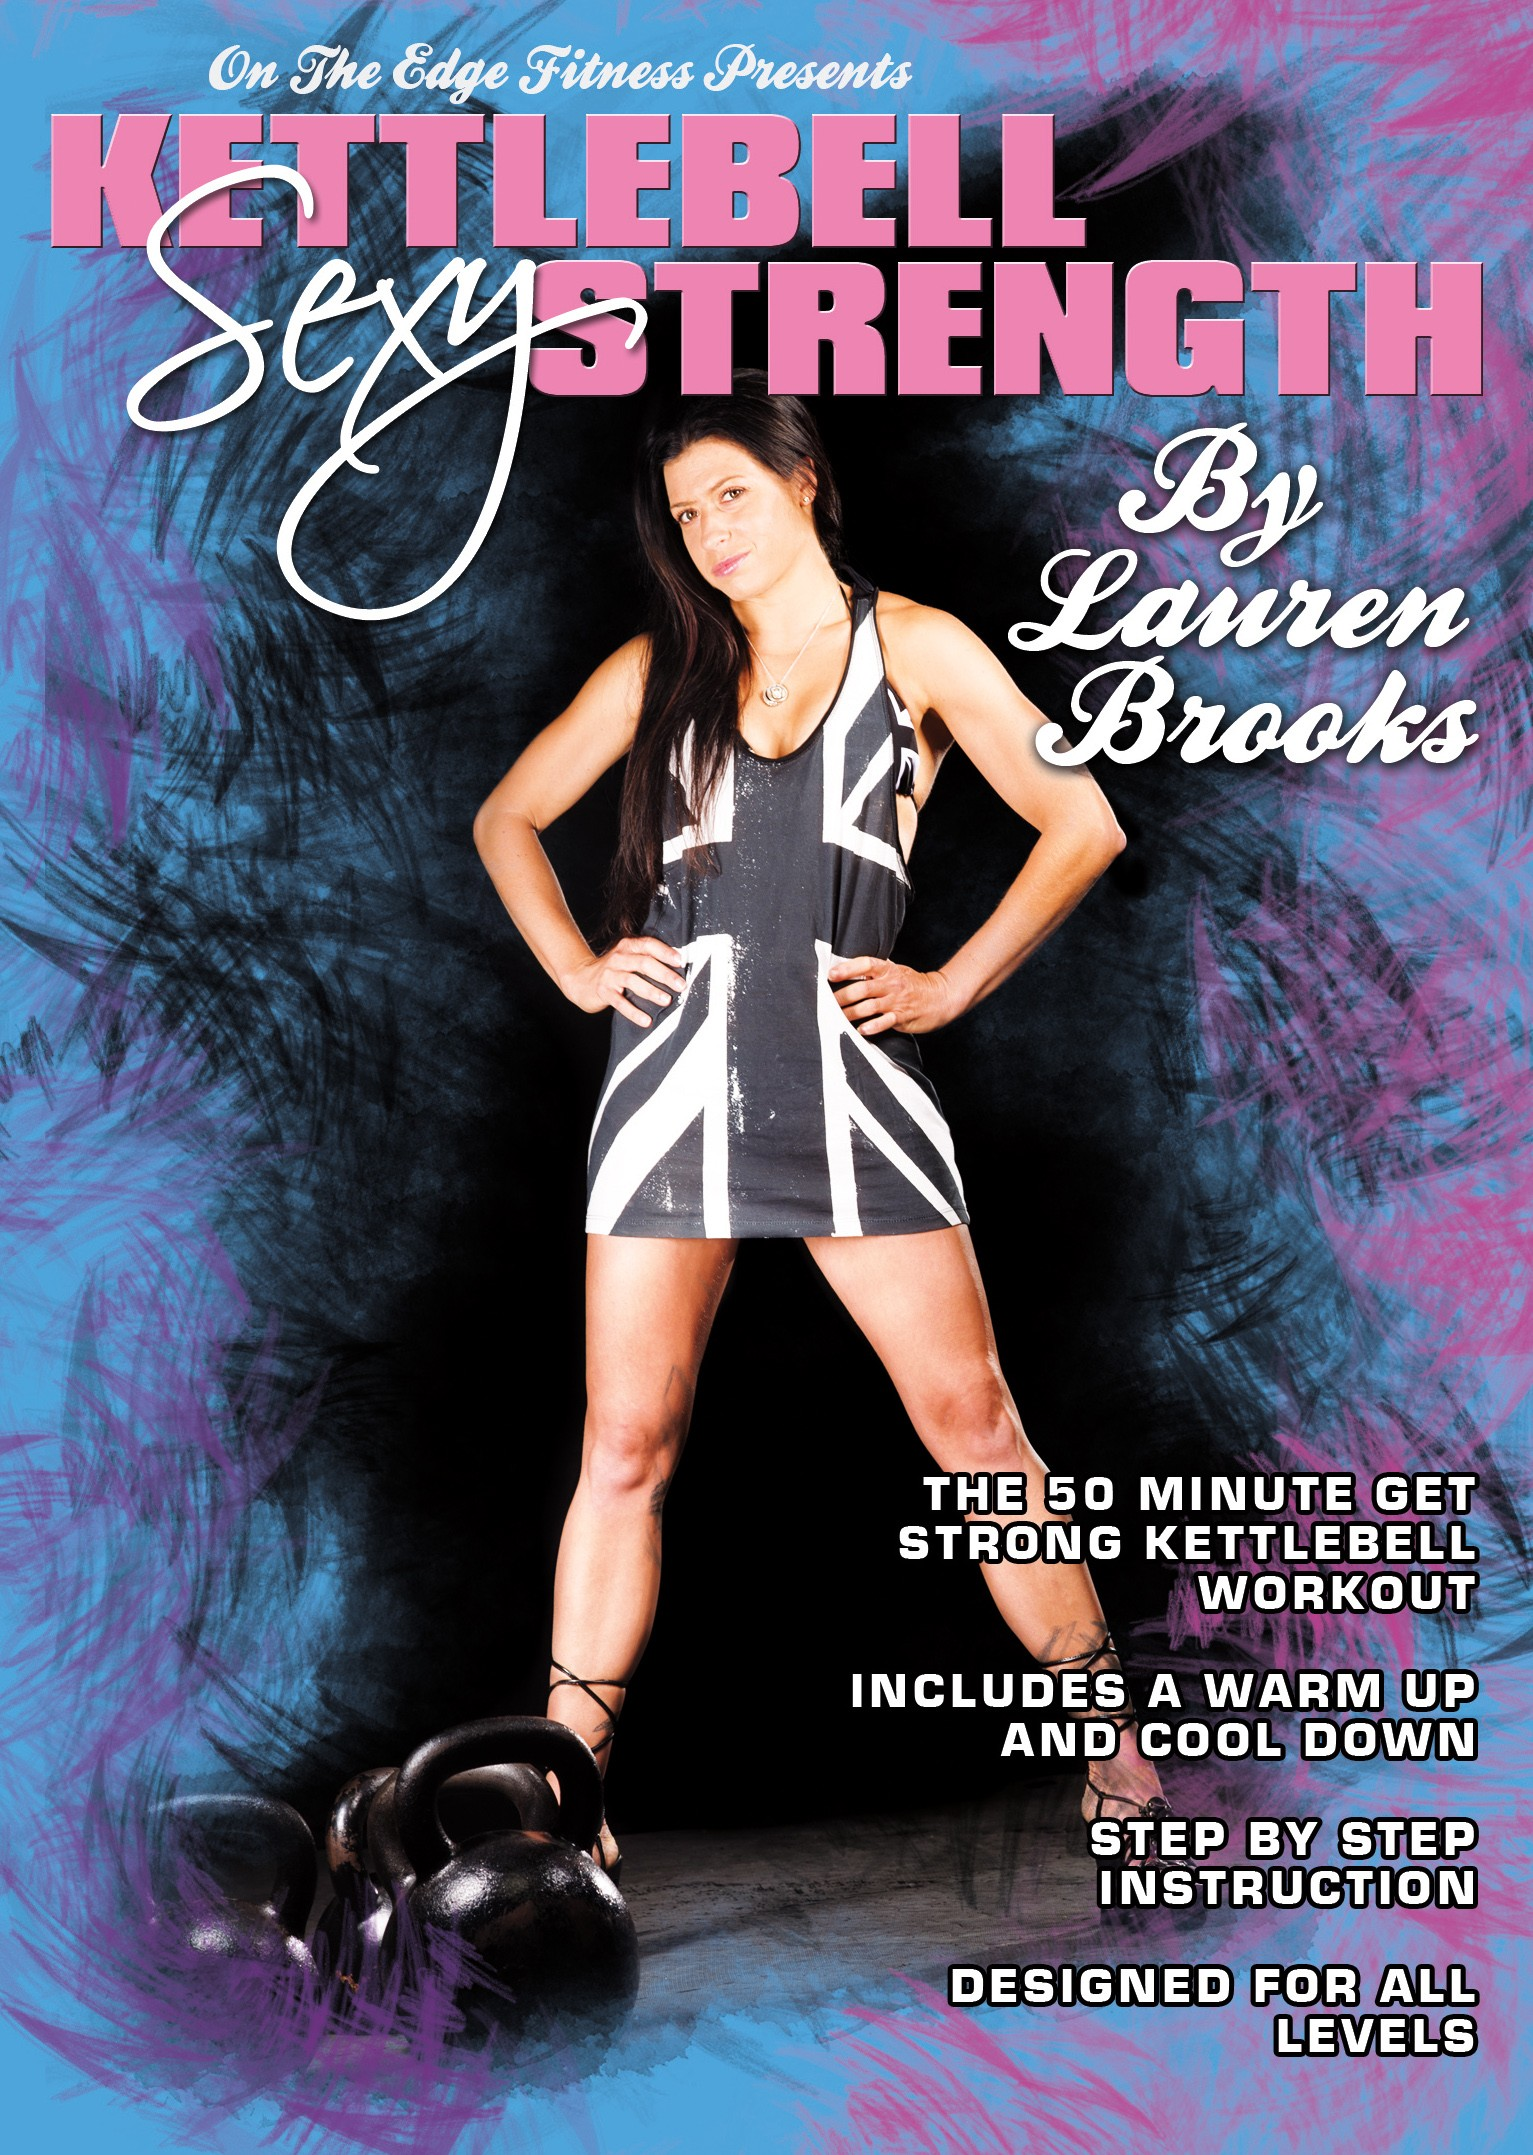 Lauren Brook's Fitness Sexy Strength with Kettlebells DVD